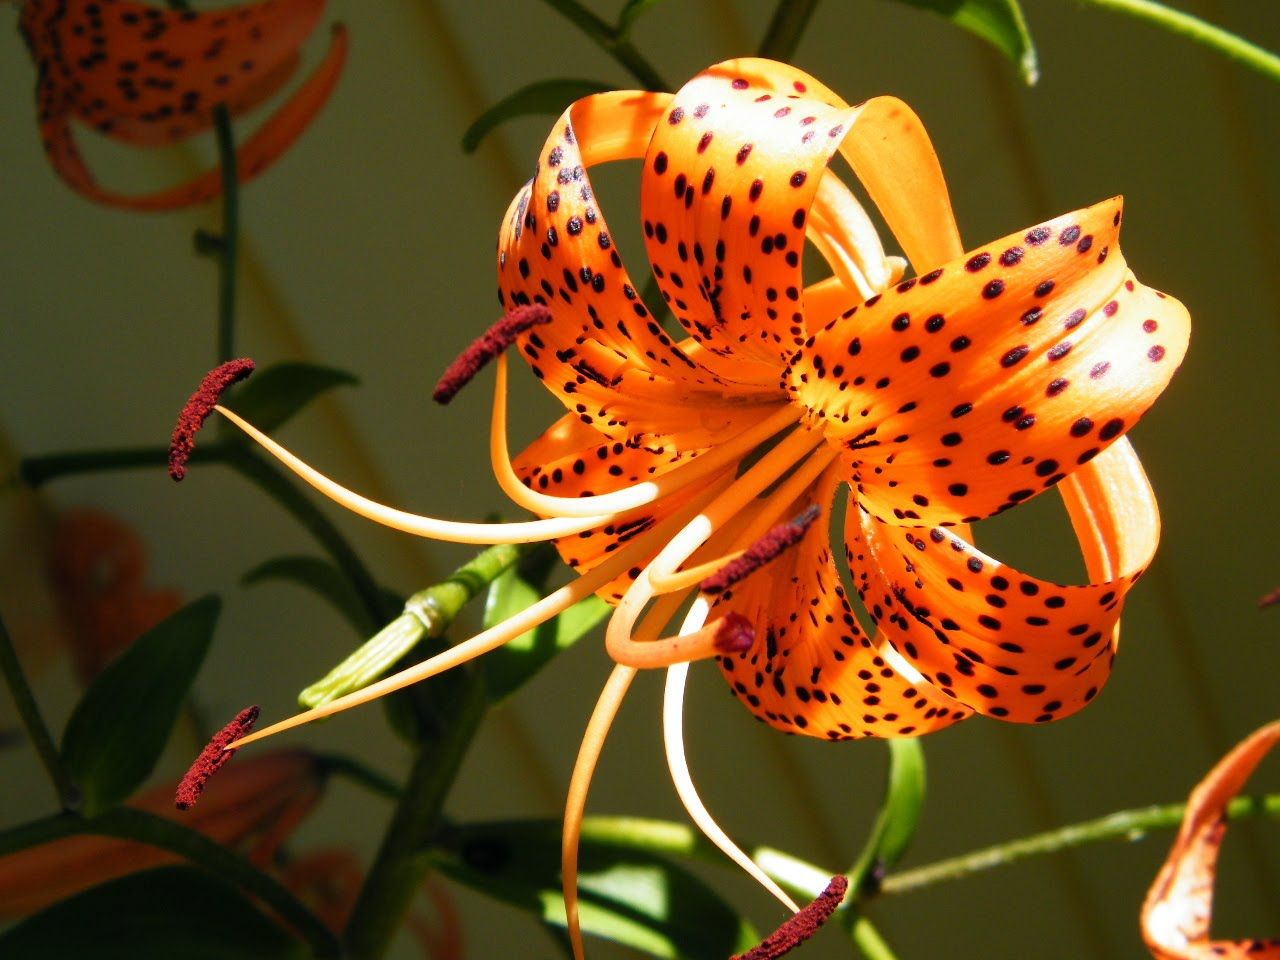 File Name 905242 Tiger Lily Flower Backgrounds by Mark Kennedy on 1280x960